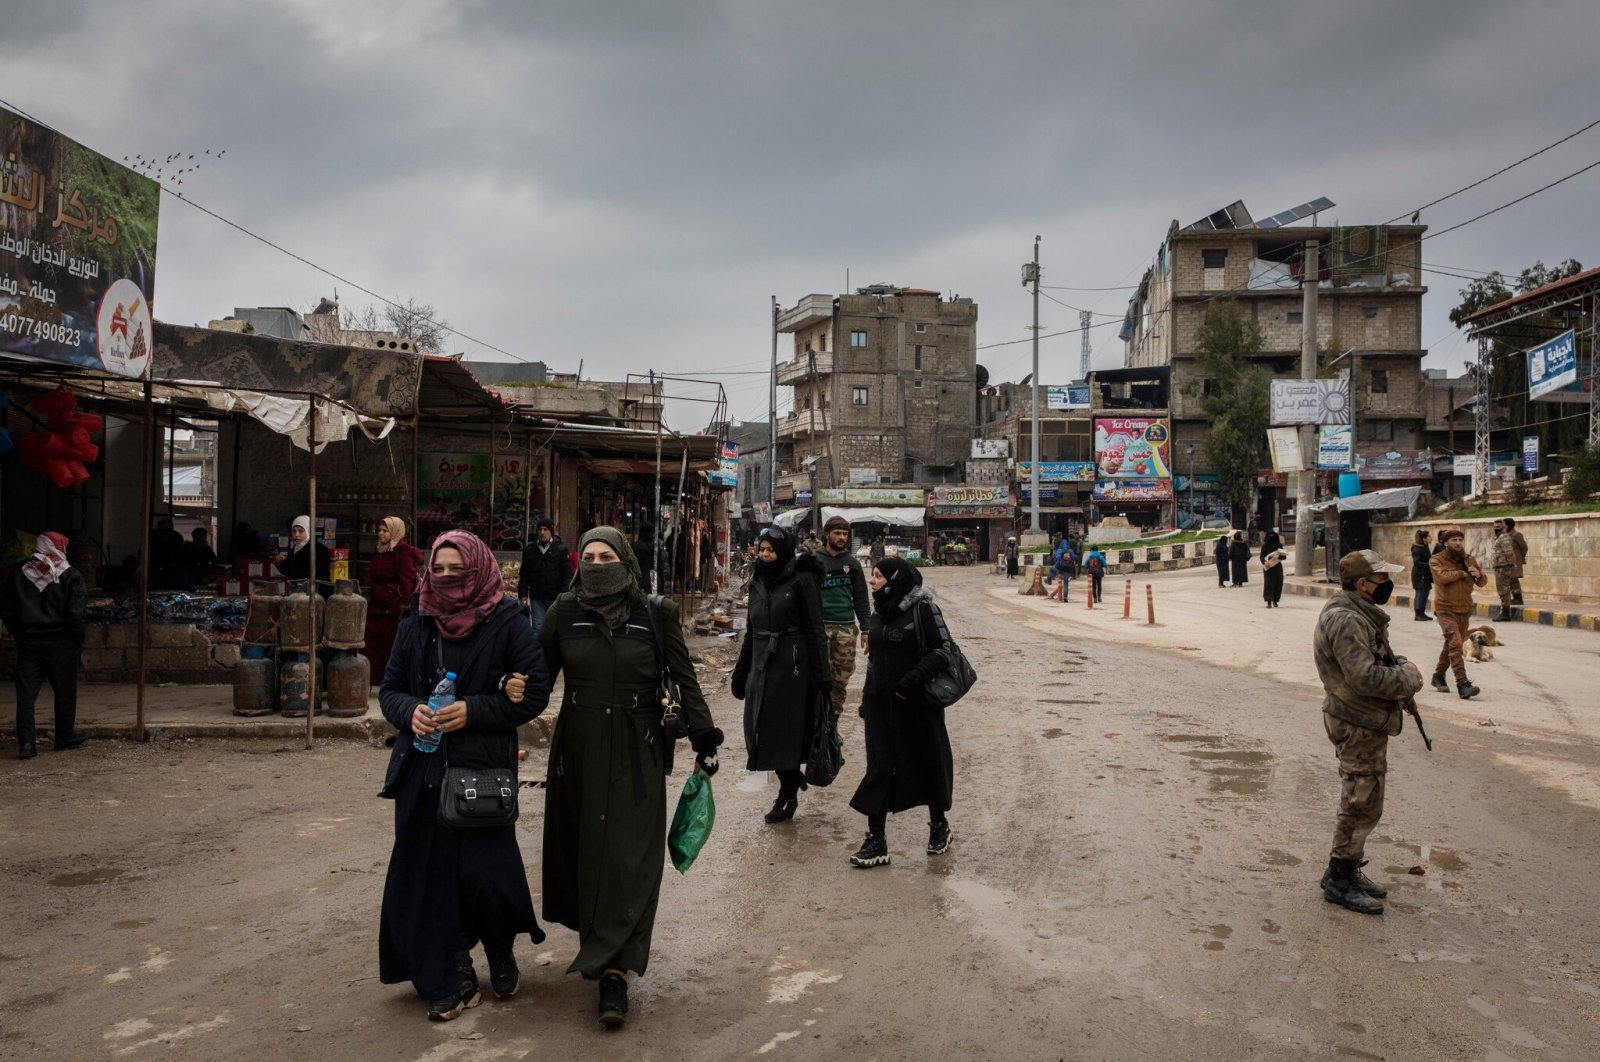 A view from the daily life in northern Syria's Afrin, Feb. 18, 2021. (Sabah Photo)